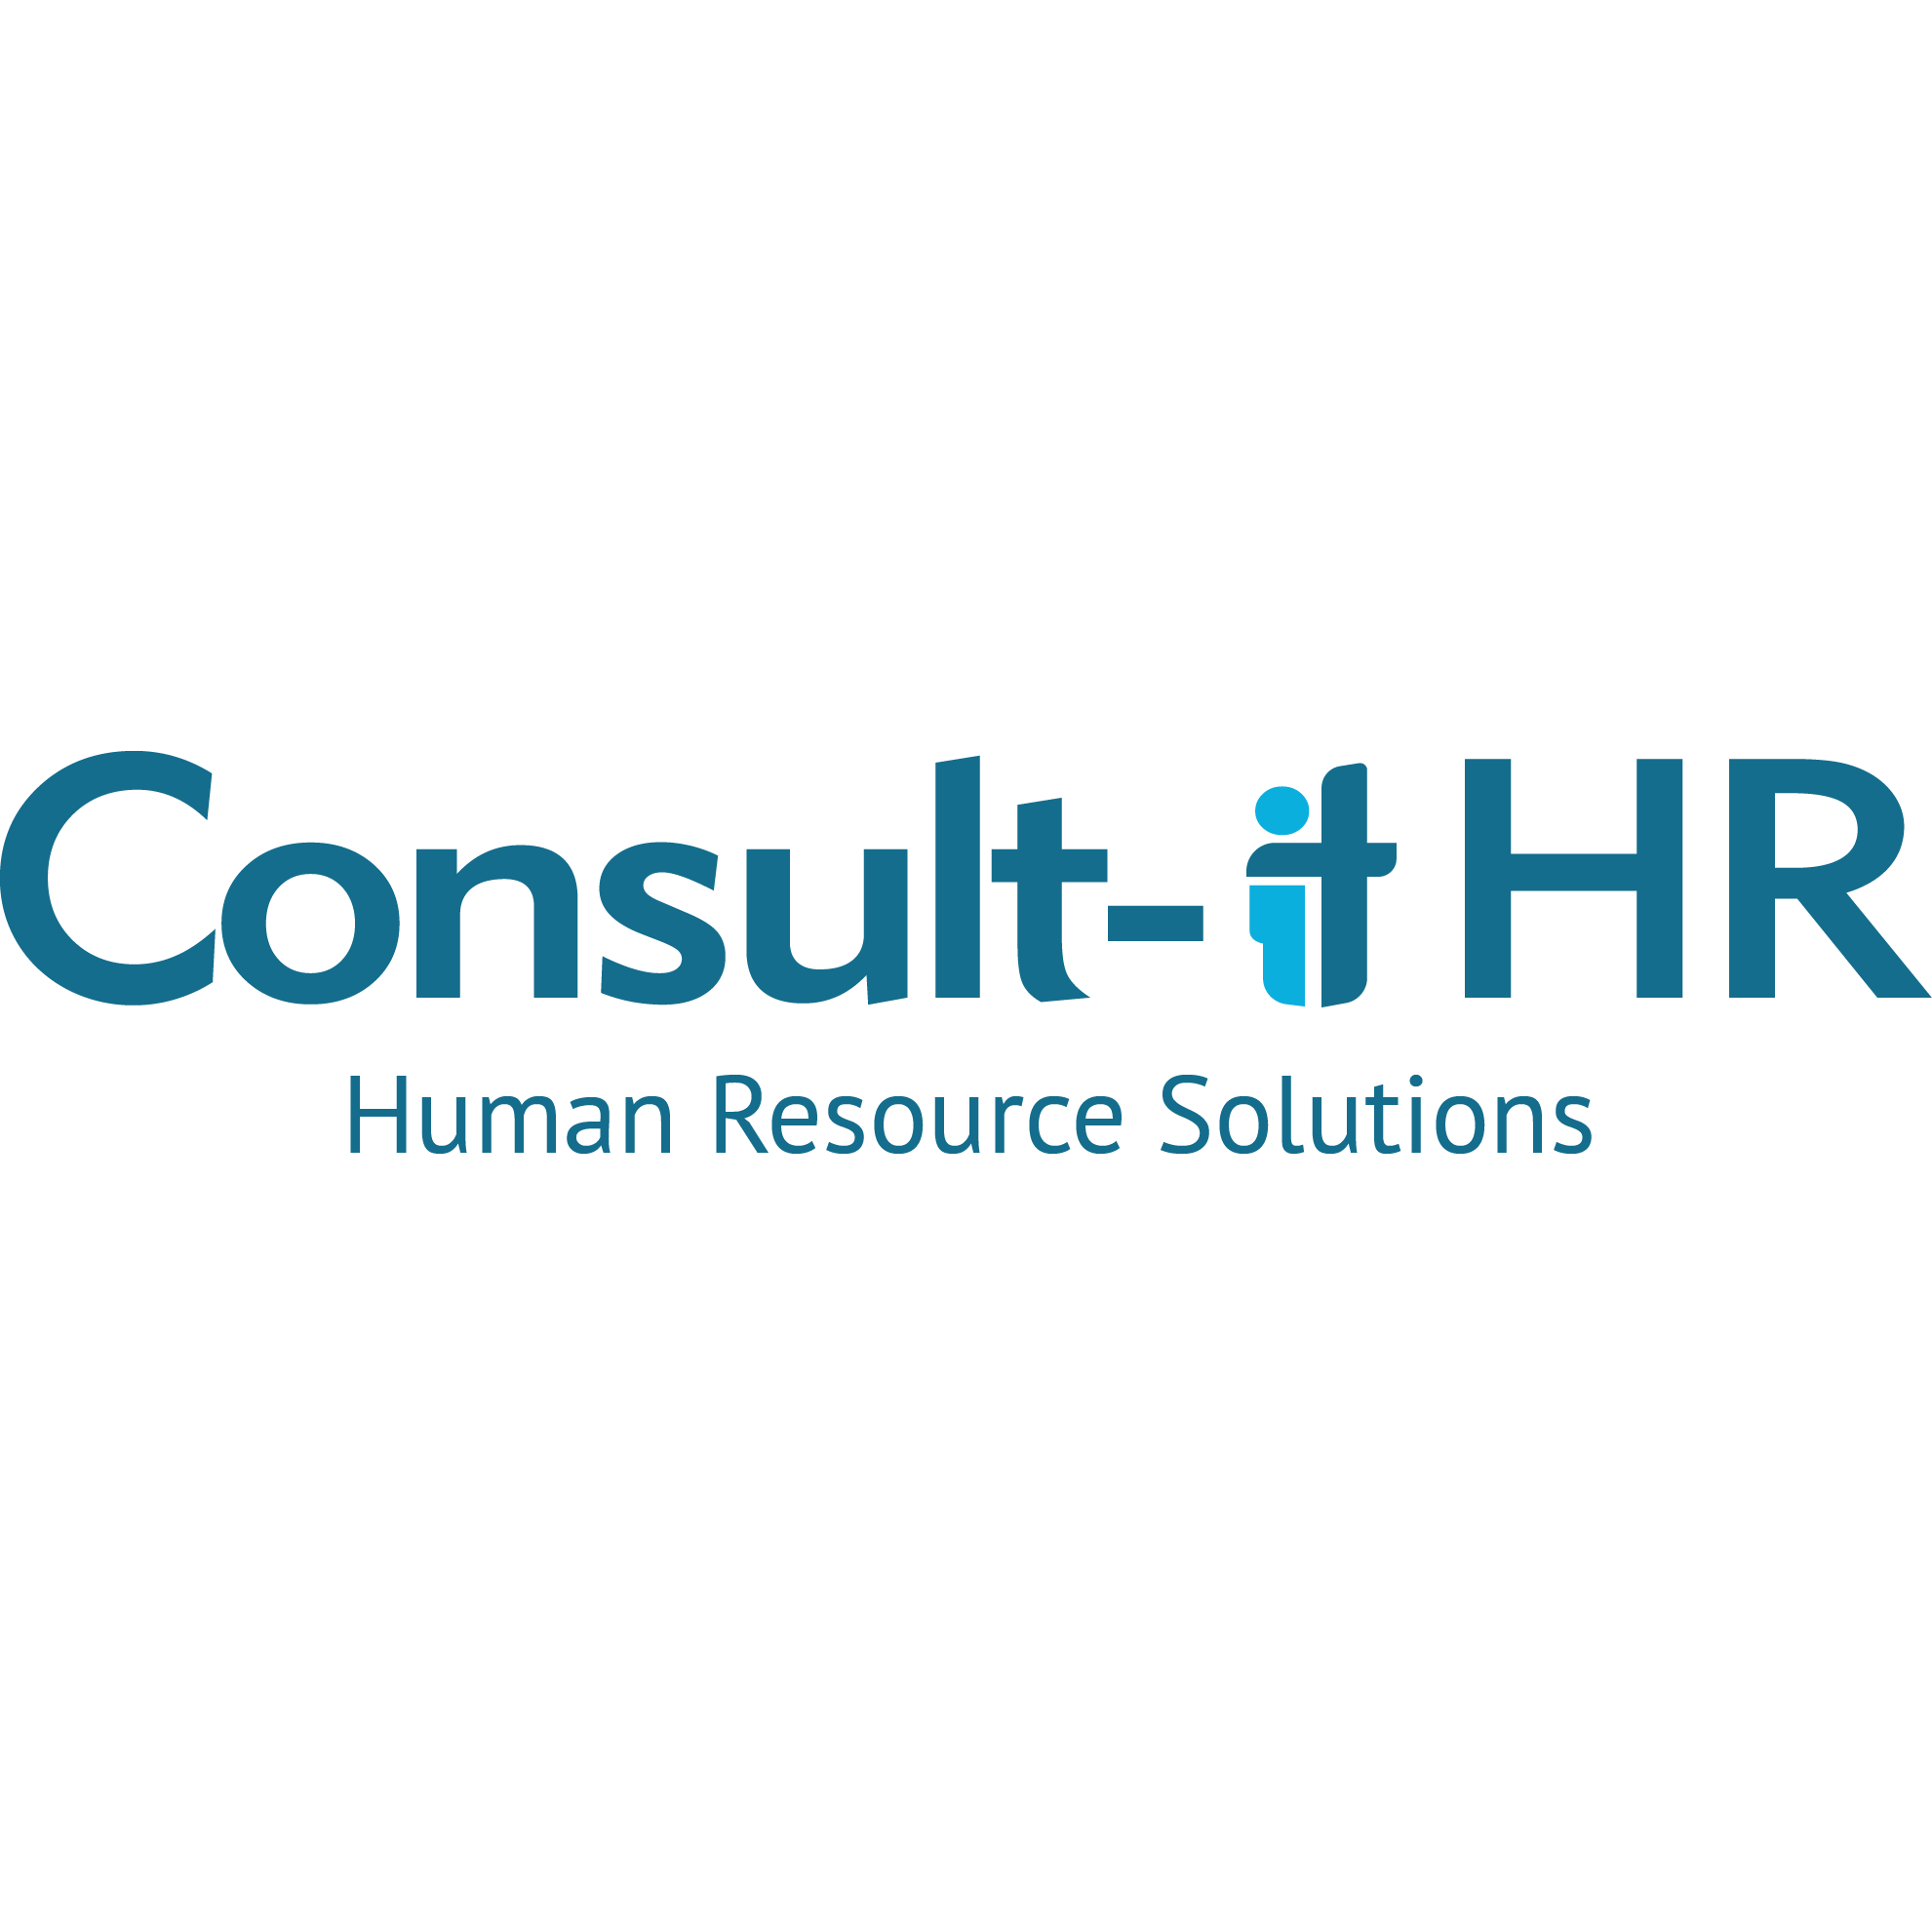 image of Contsult-it HR